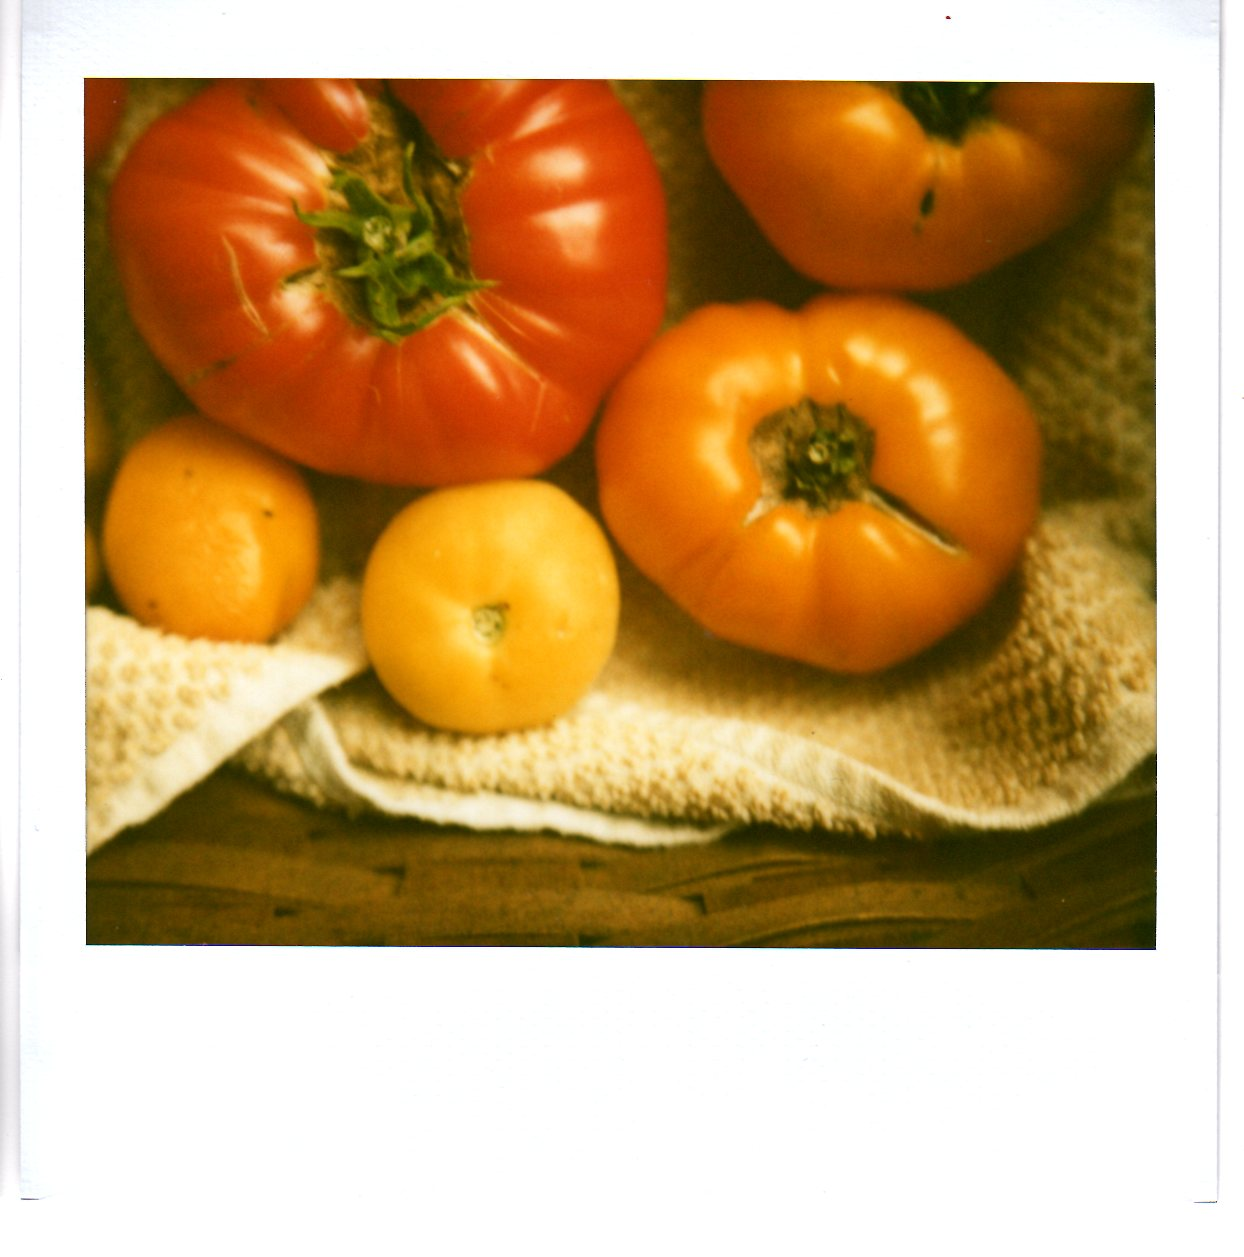 ode to tomatoes Posts about ode to tomatoes written by foodinbooks.